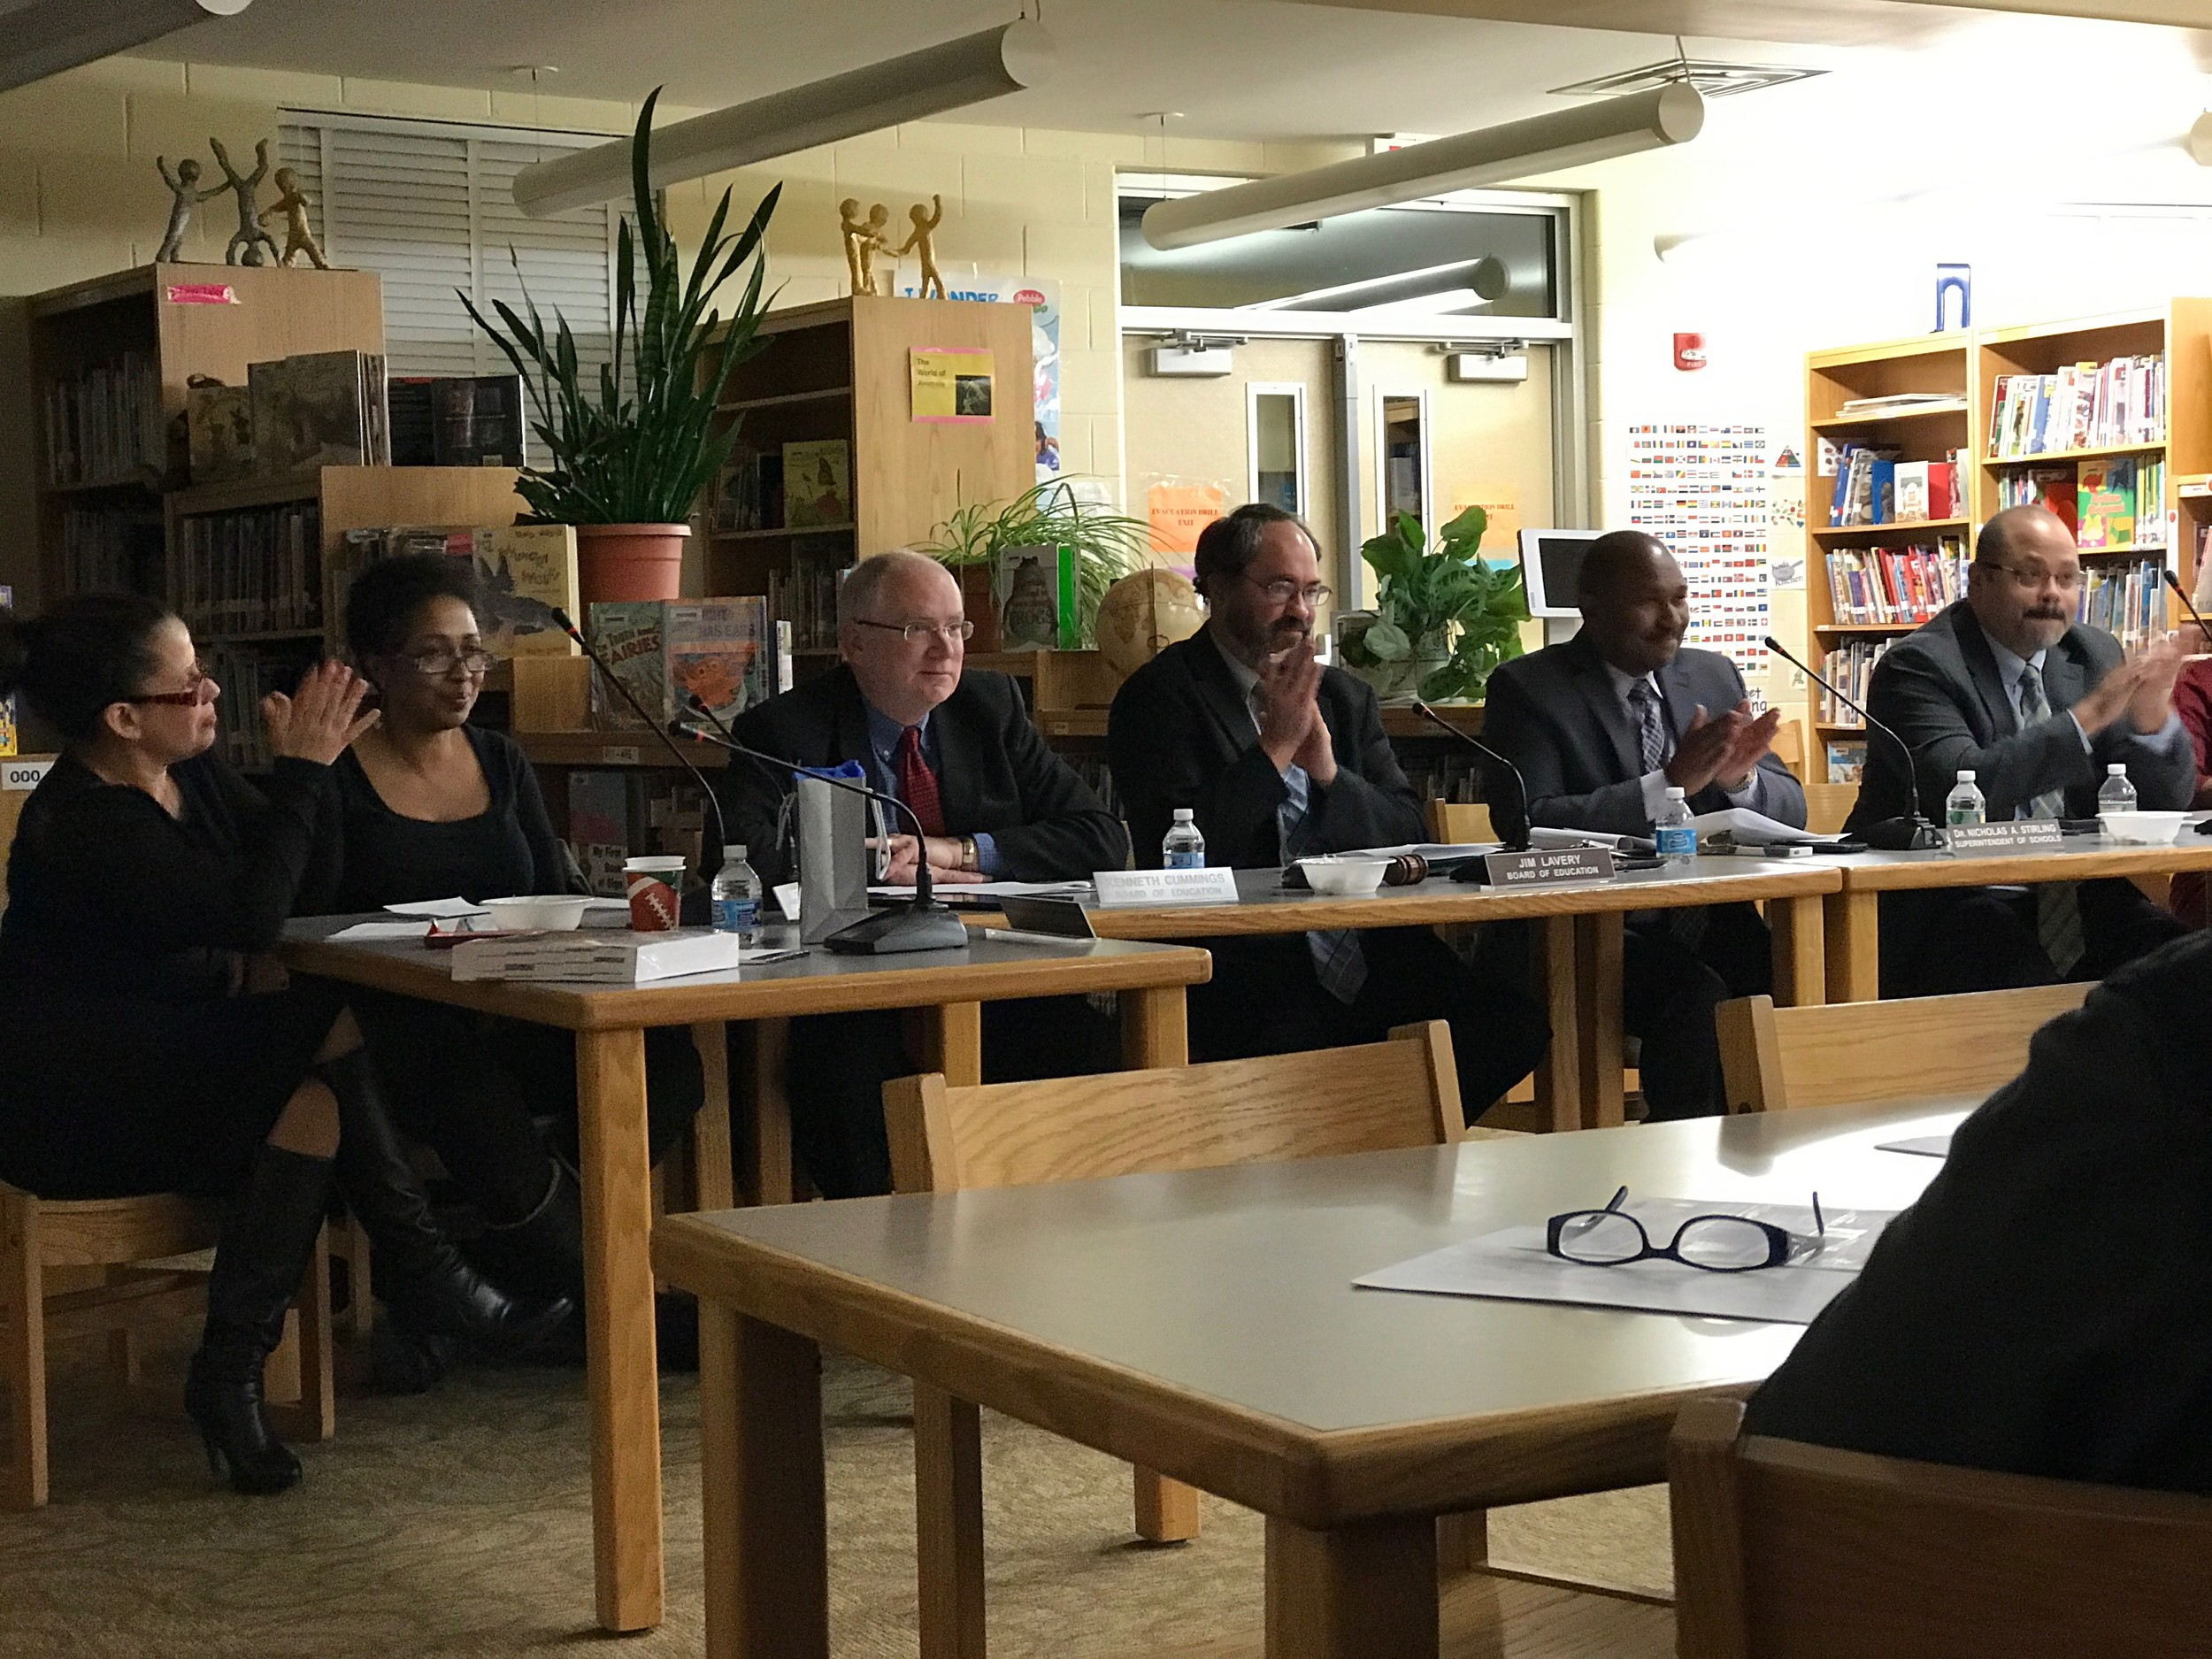 Members of the District 30 Board of Education applauded its vote to add two Islamic holy days to next year's school calendar.